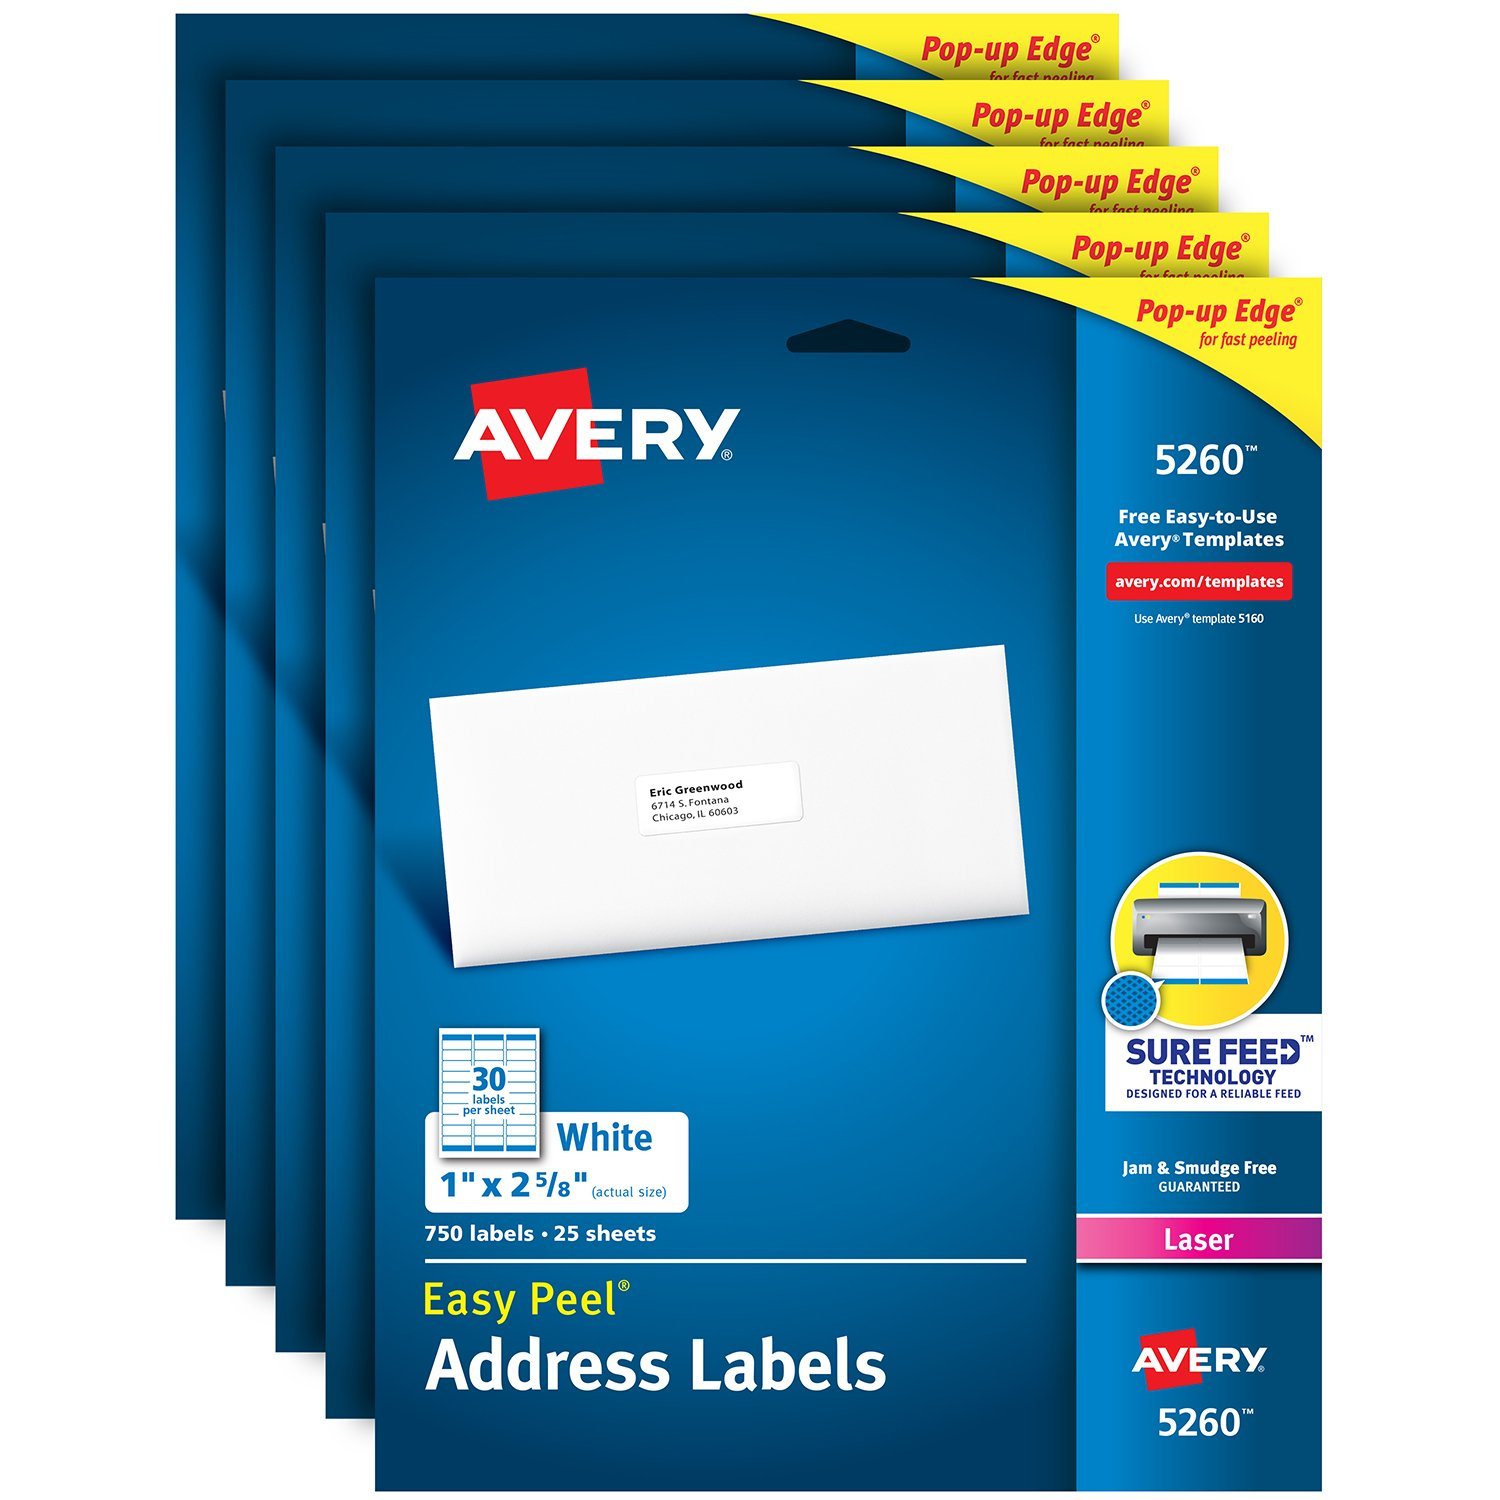 Avery Address Labels with Sure Feed for Laser Printers, 1'' x 2-5/8'', 3,750 Labels – Great for FBA Labels (5 Packs 5260)